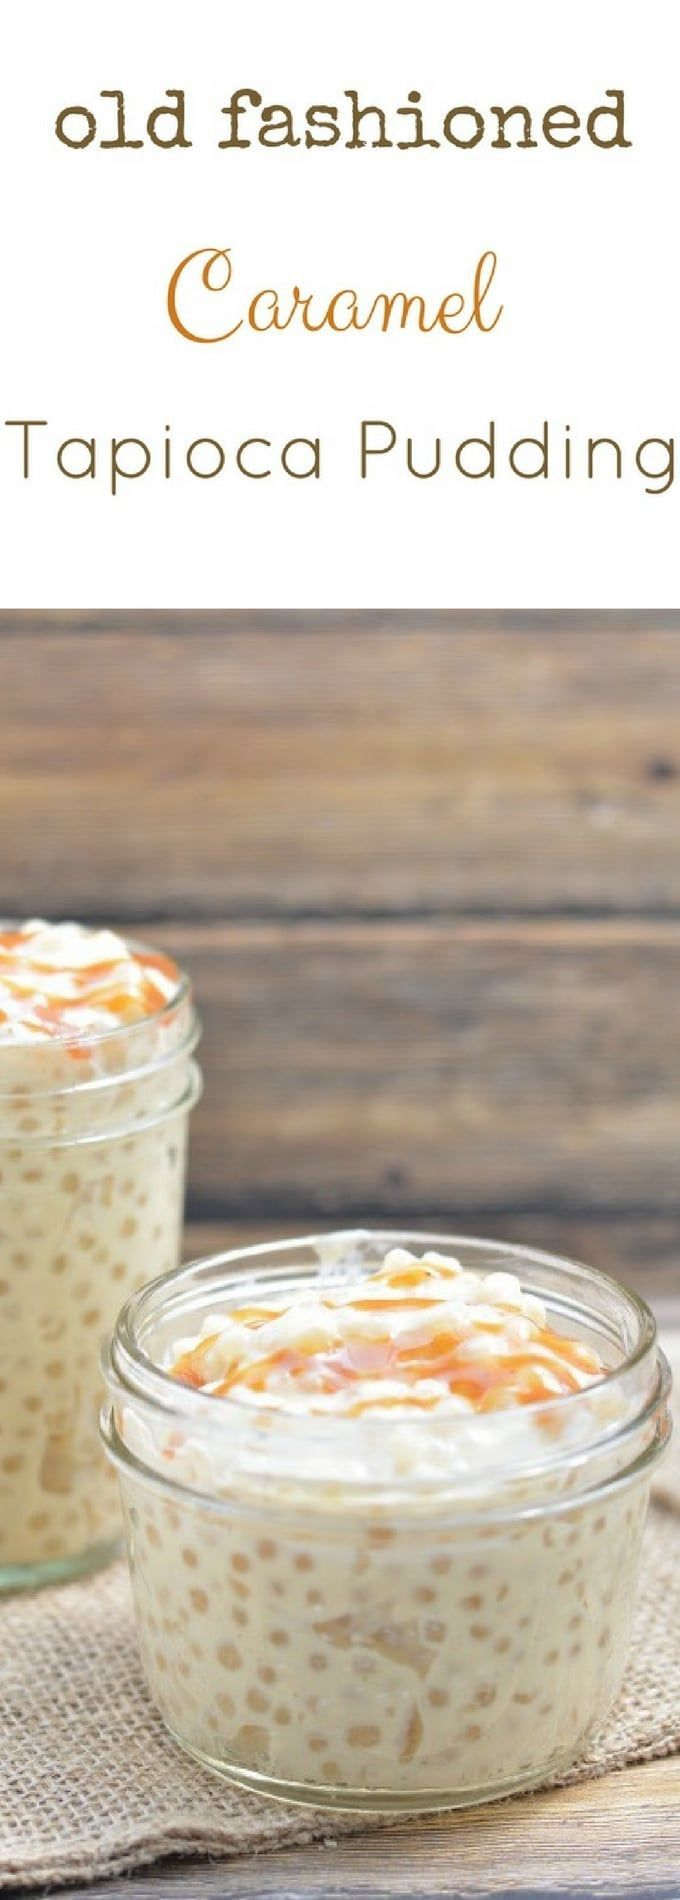 old fashioned caramel tapioca pudding is a creamy delicious pudding ...